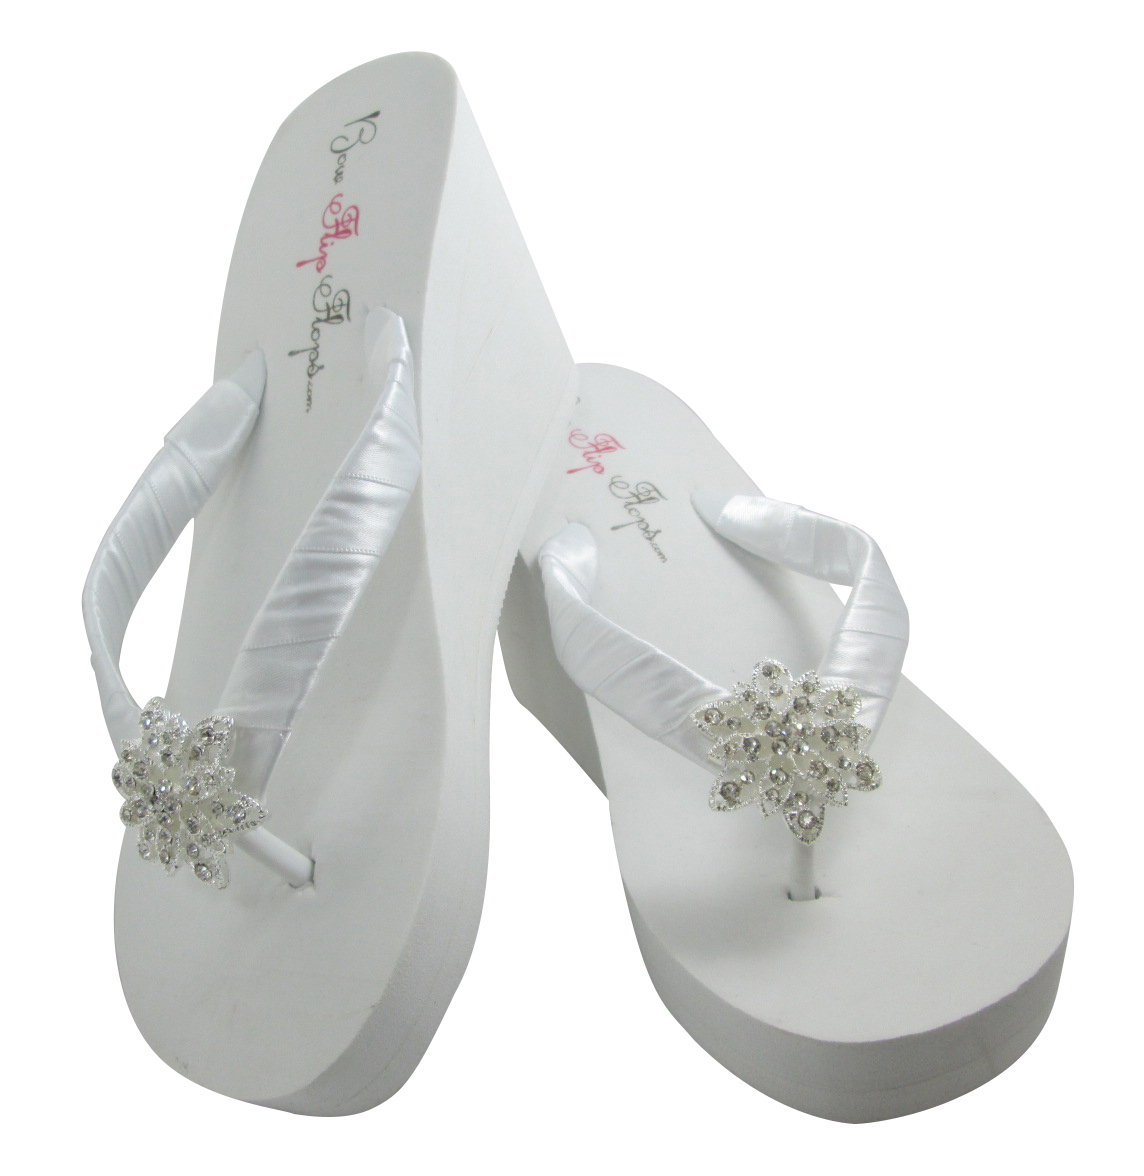 fbfd2a457 White Wedge Wedding Flip Flops with Vintage Flower Bling